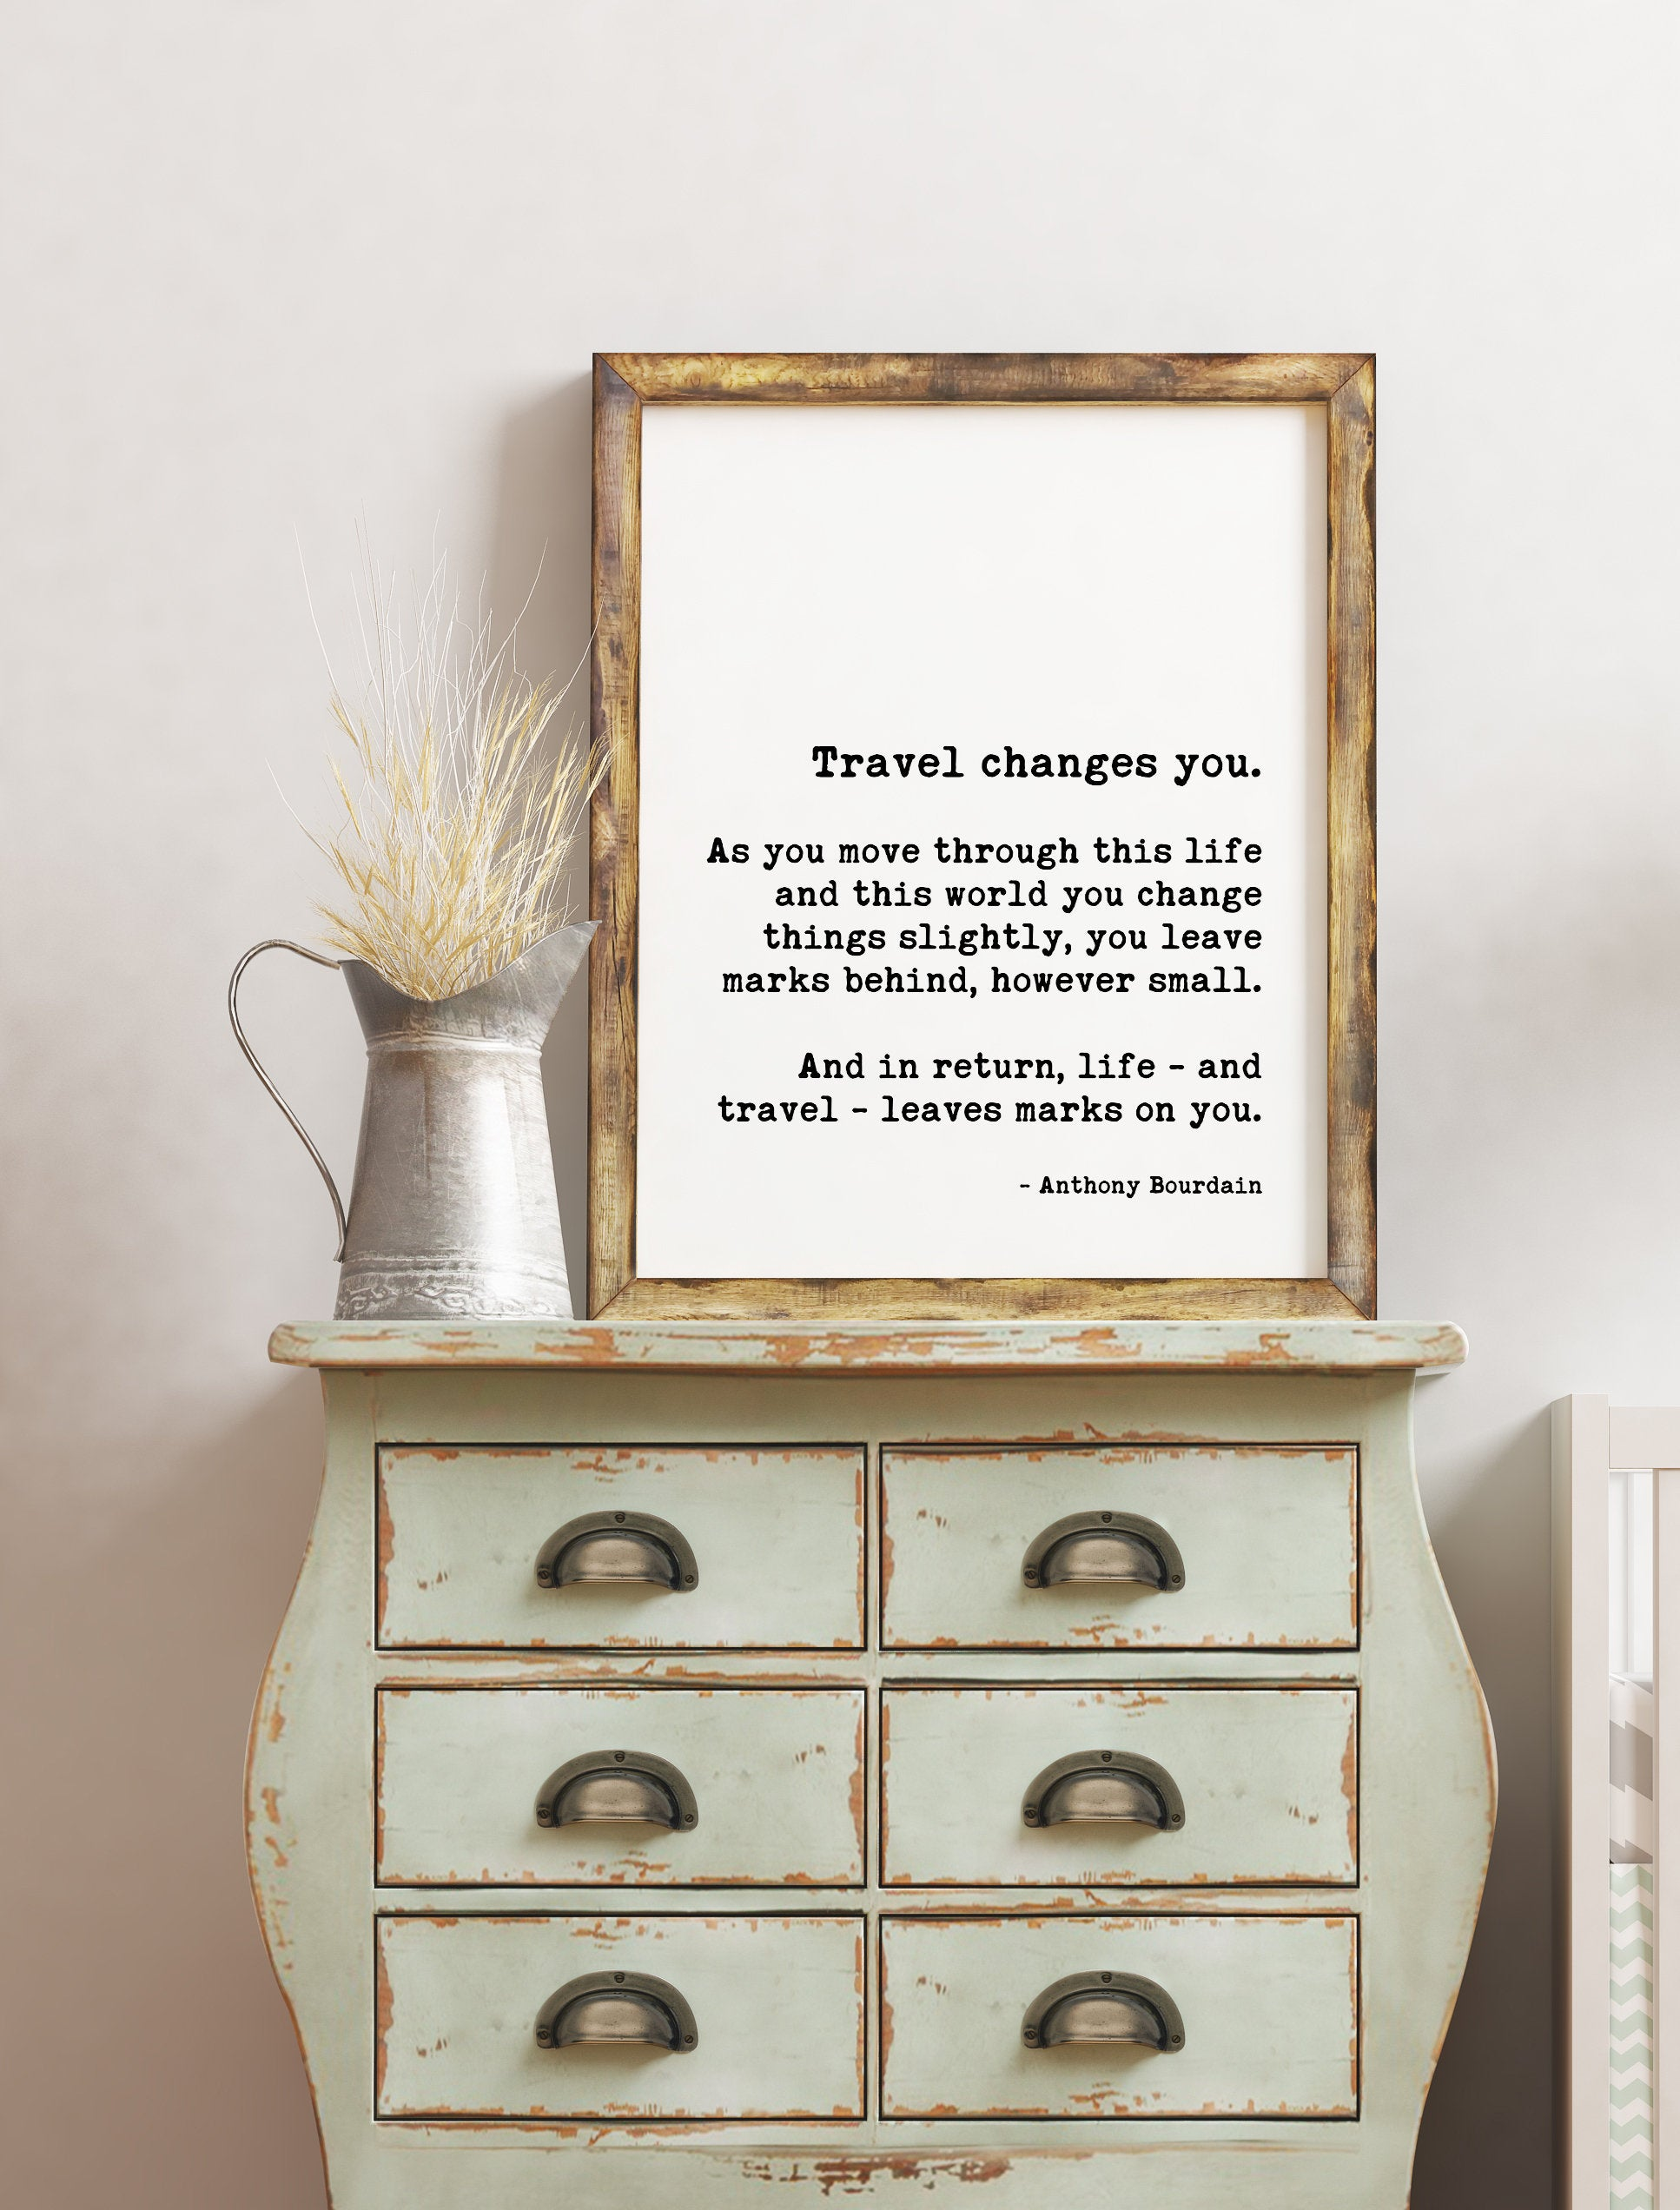 Anthony Bourdain Travel Changes You Quote Art Print -  Leaves marks on you - Personal Growth - Wisdom - Travel Quotes Art